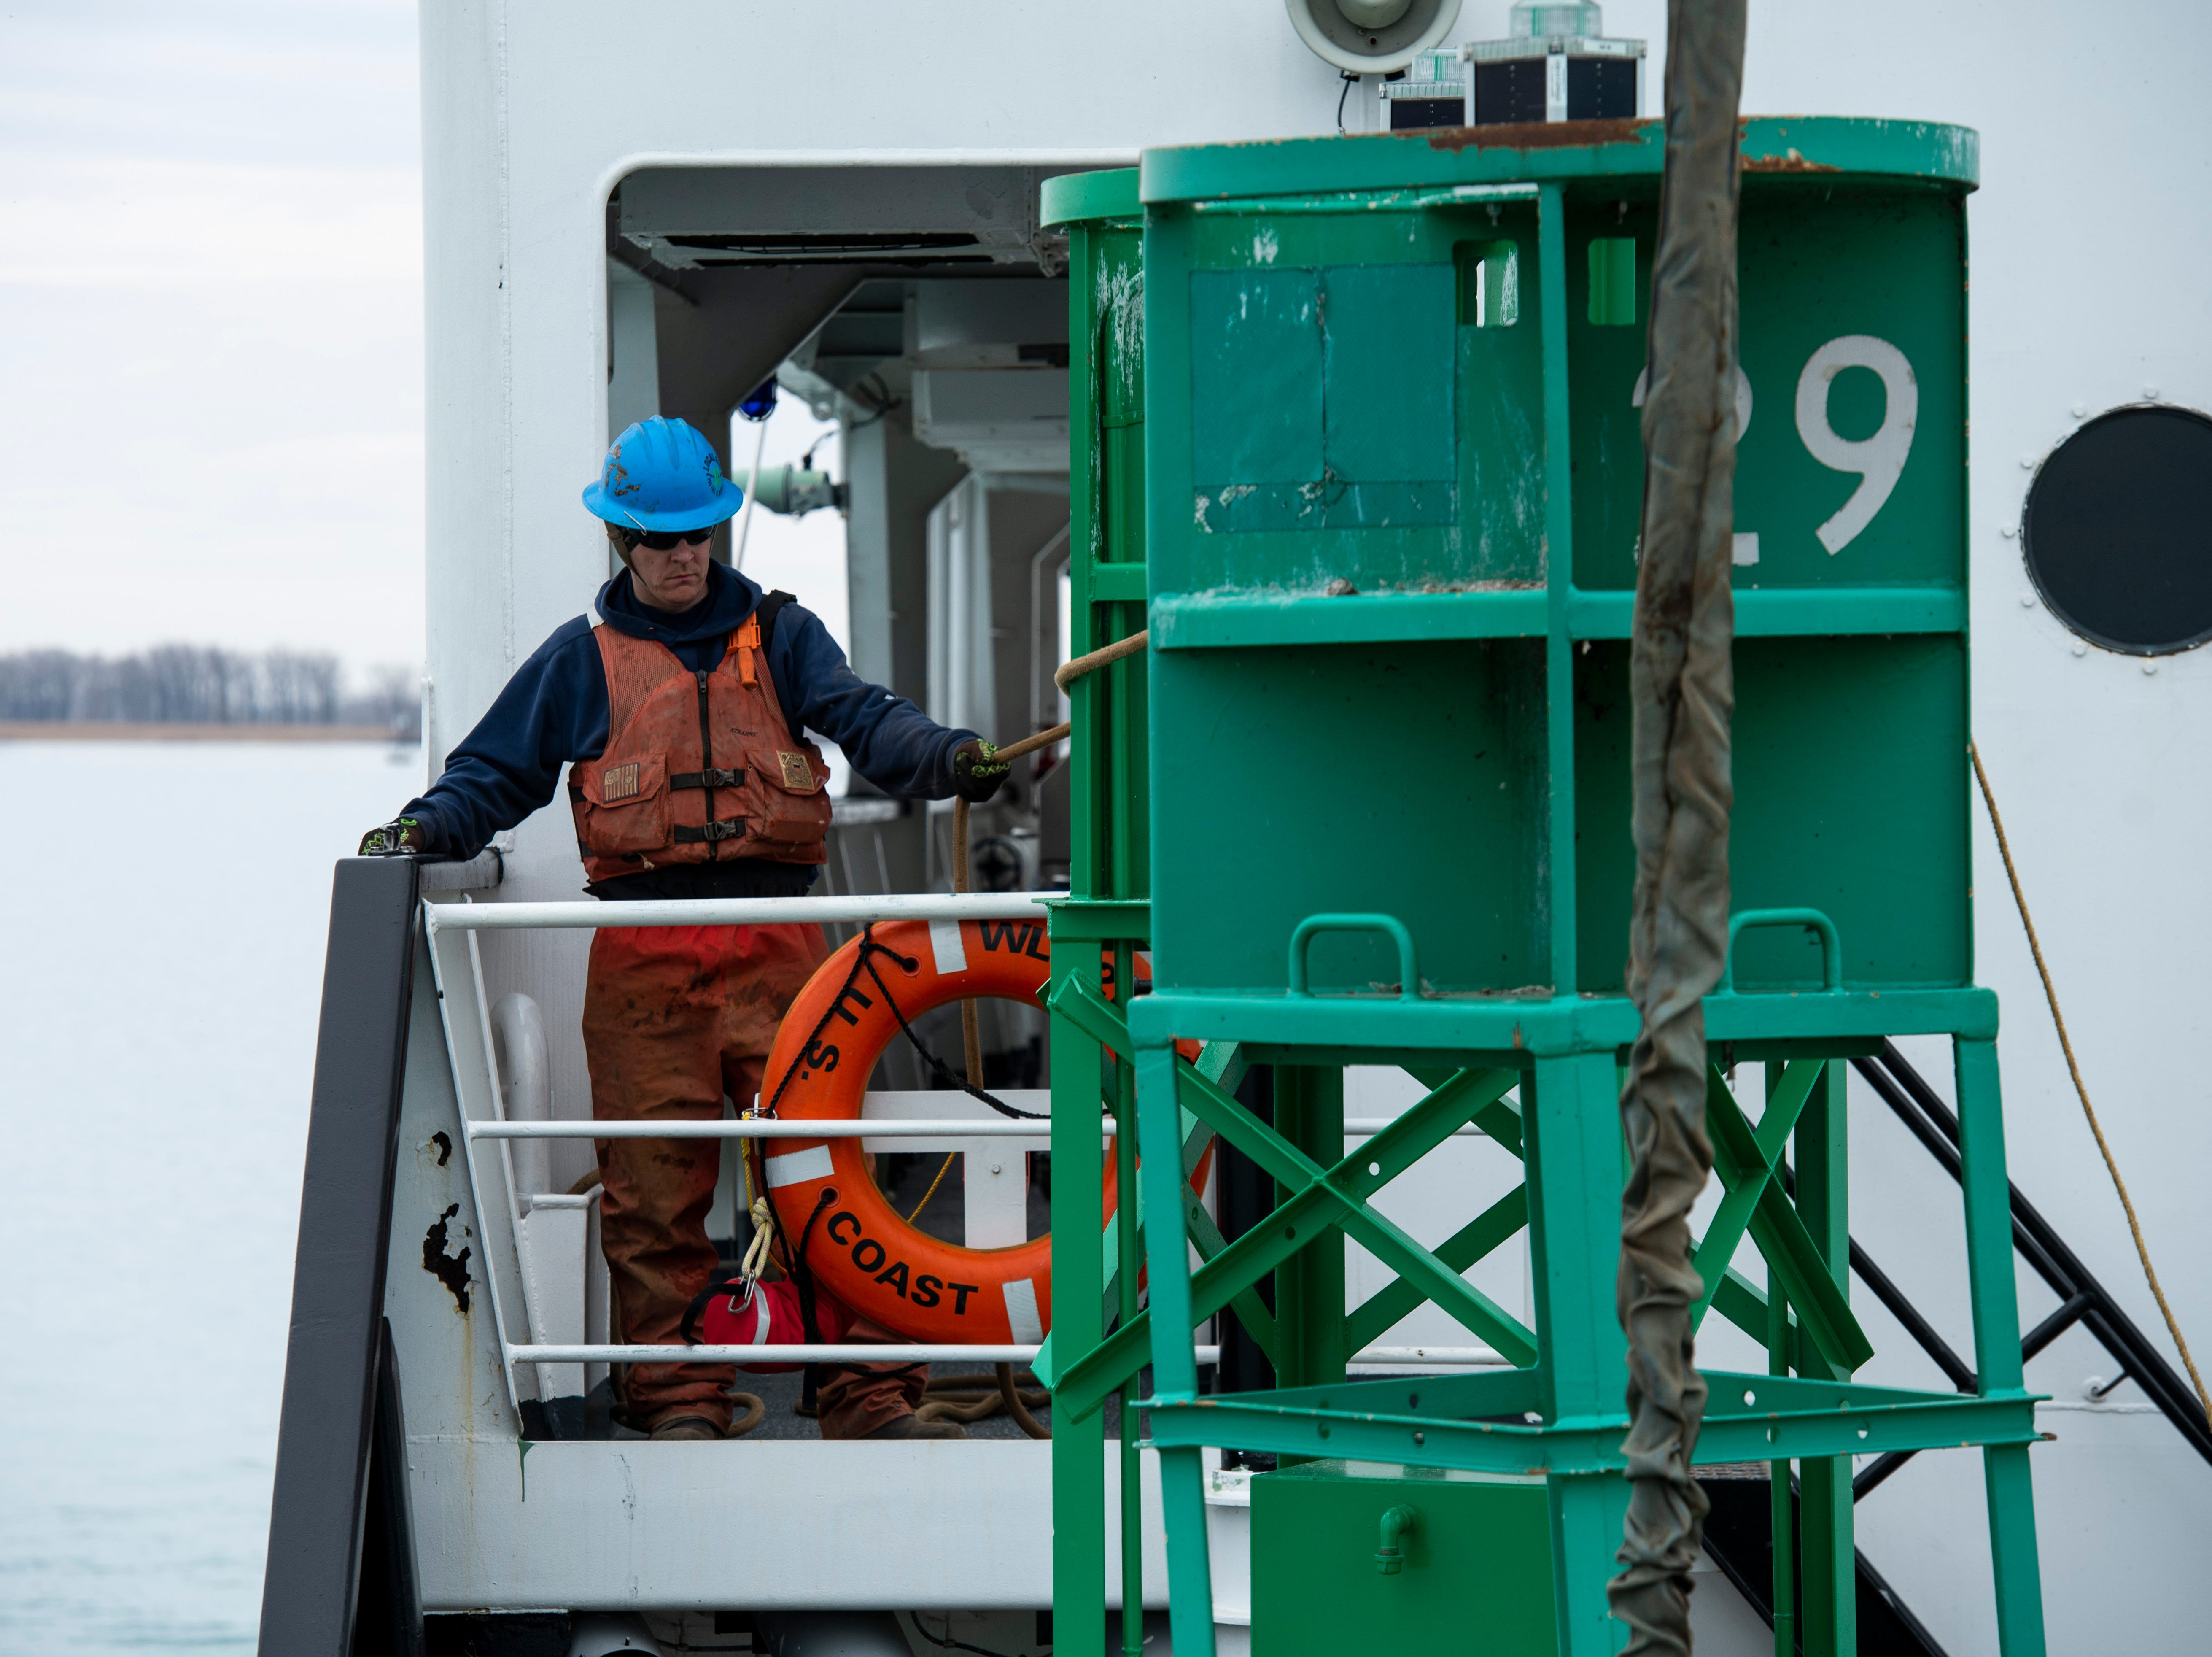 U.S. Coast Guard SK2 Tanner Bartholomew holds a line on a buoy Thursday, April 25, 2019 aboard the USCGC Hollyhock on Lake St. Clair. As each buoy is set into the water, a minimum of two lines are attached to the buoy. The opposing force of the lines helps to keep the buoy from spinning too far while also keeping it close to the ship once in the water.